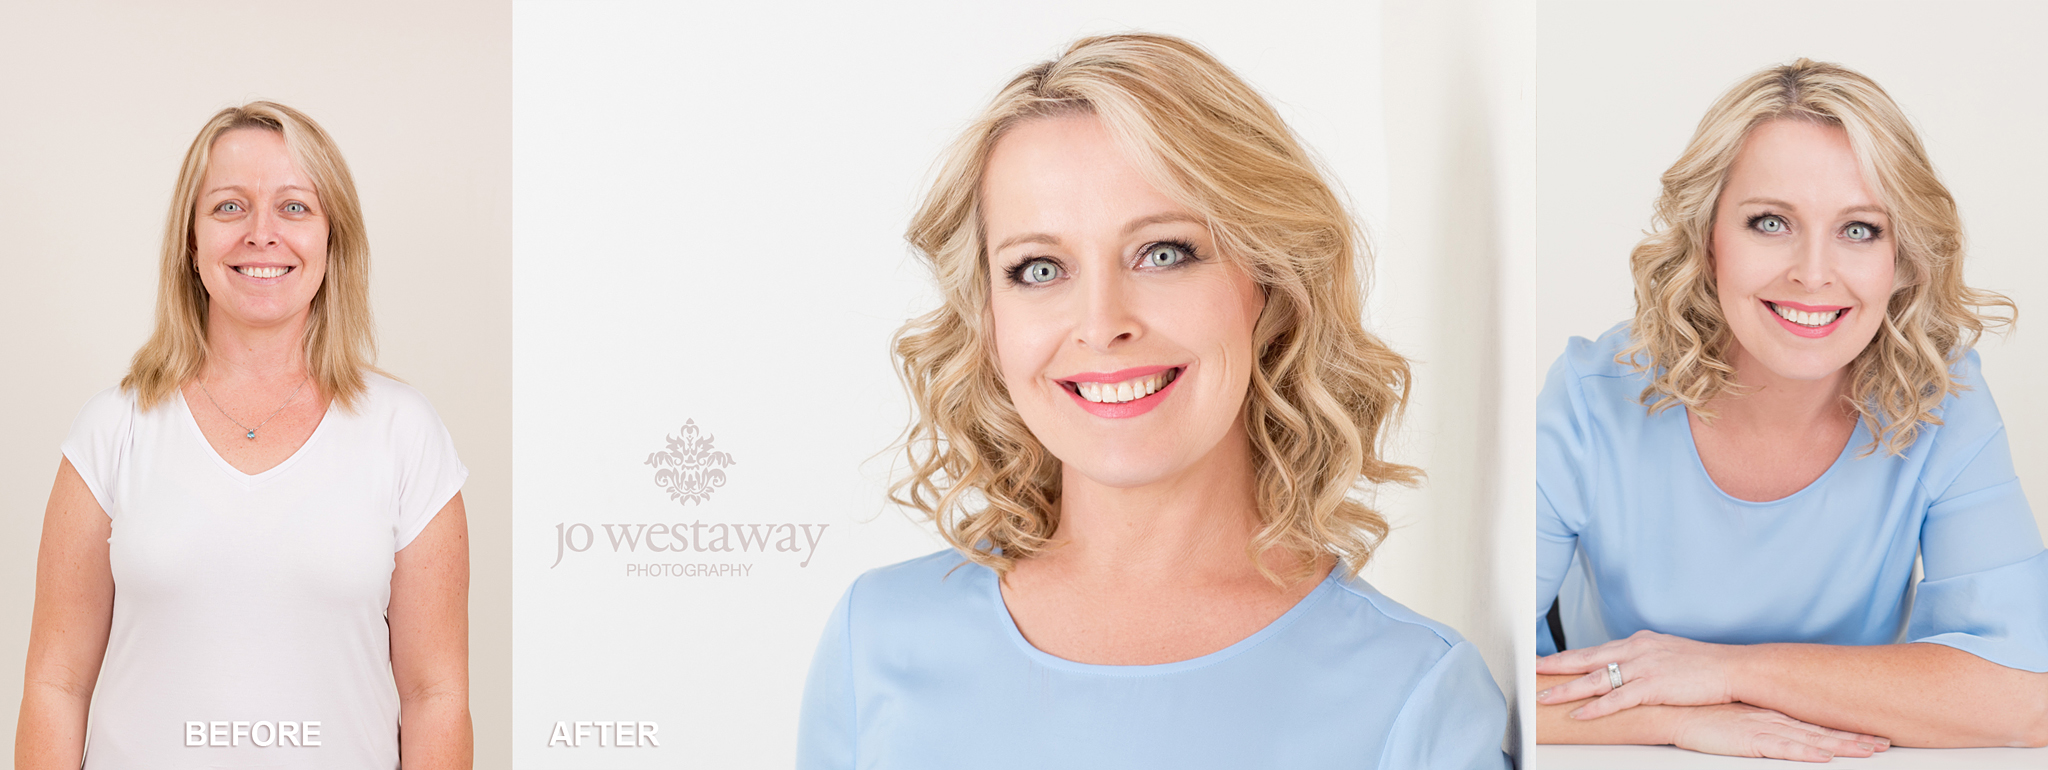 brand portraits and headshots for entrepeneurs and business leaders